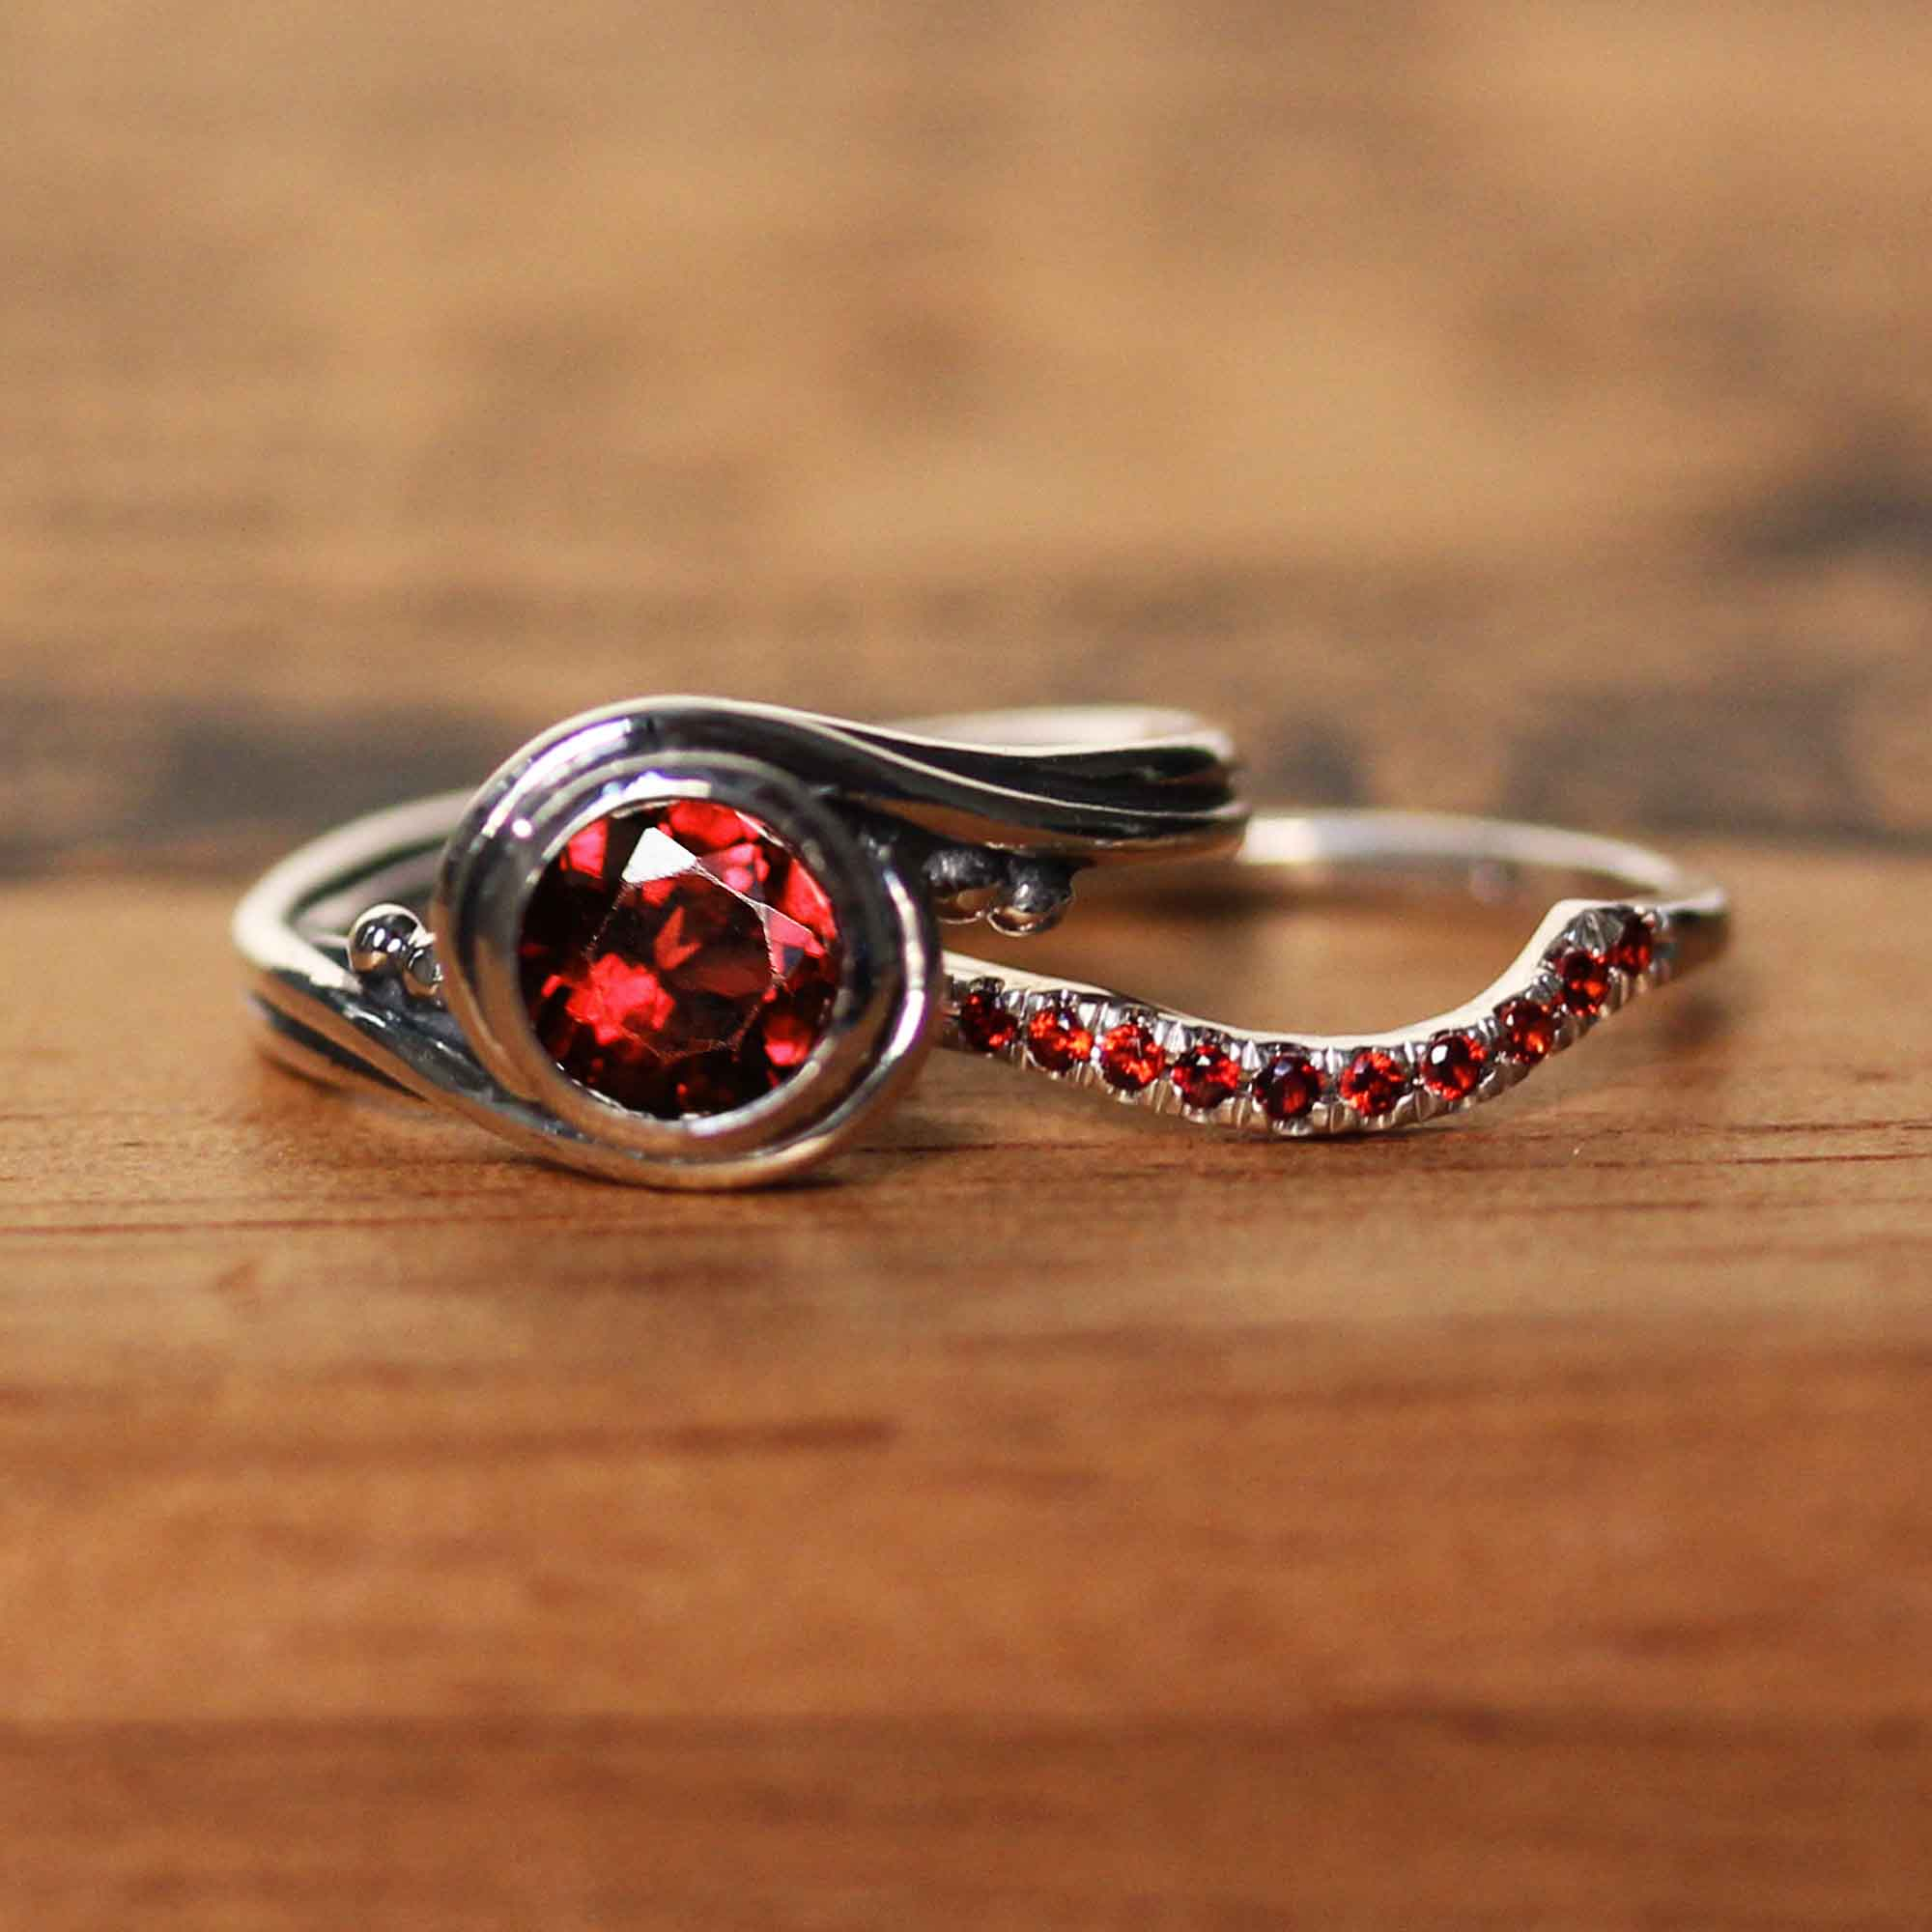 Garnet Engagement Ring With Garnet Band, Pirouette